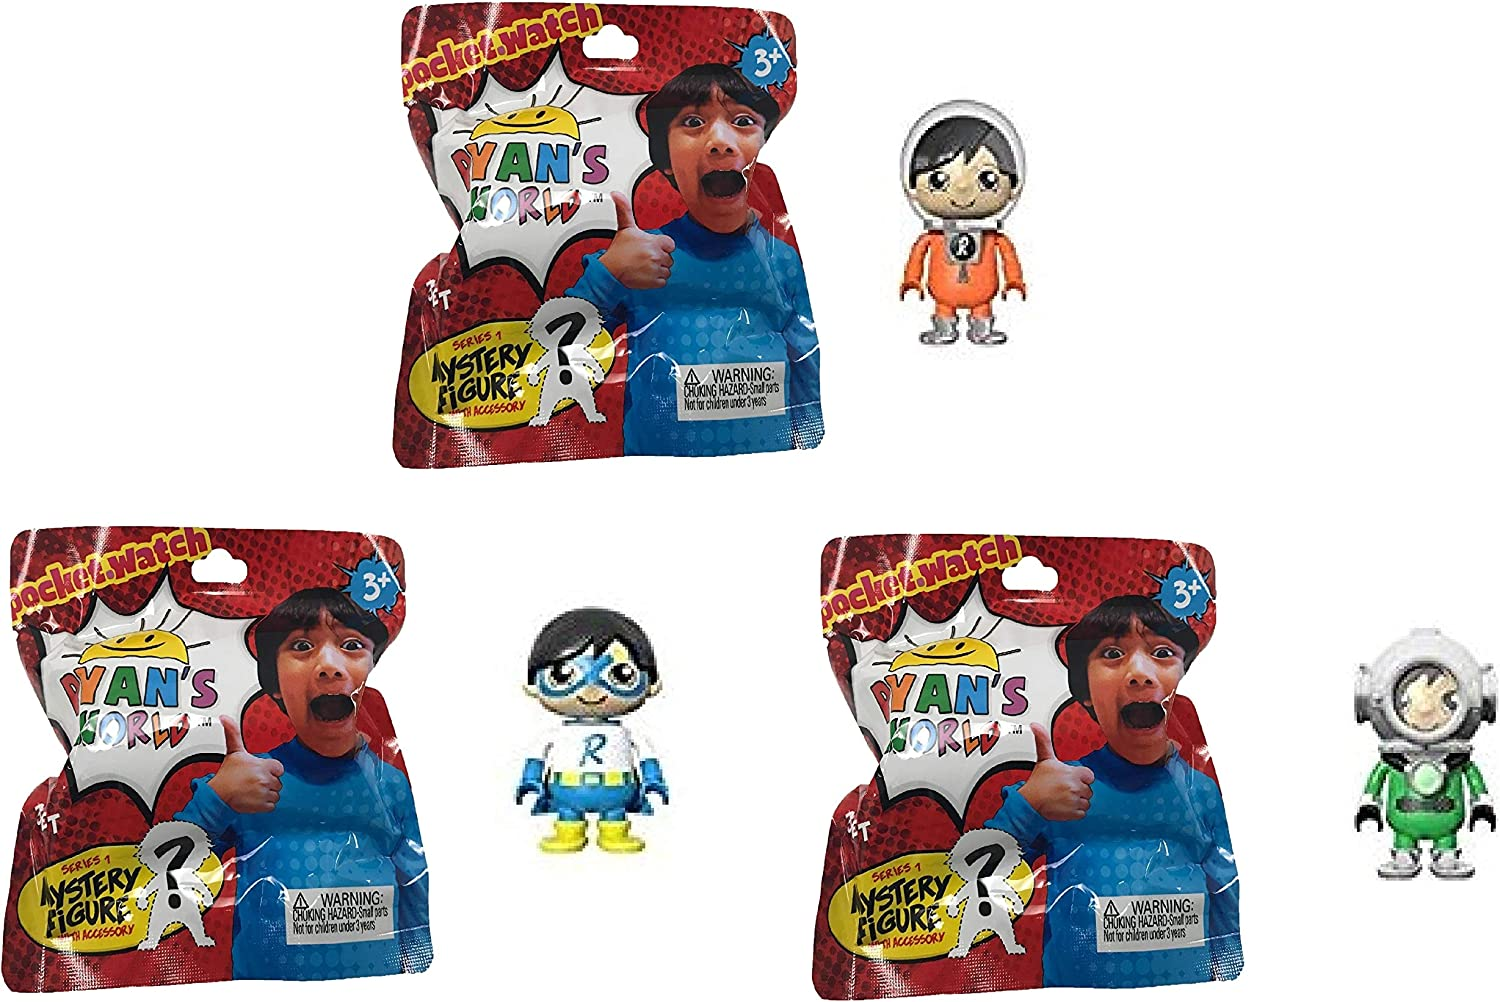 RYAN'S WORLD 3 Pack Figurine Surprise Pack - Includes 3 Random Characters from Ryan's Toy Review